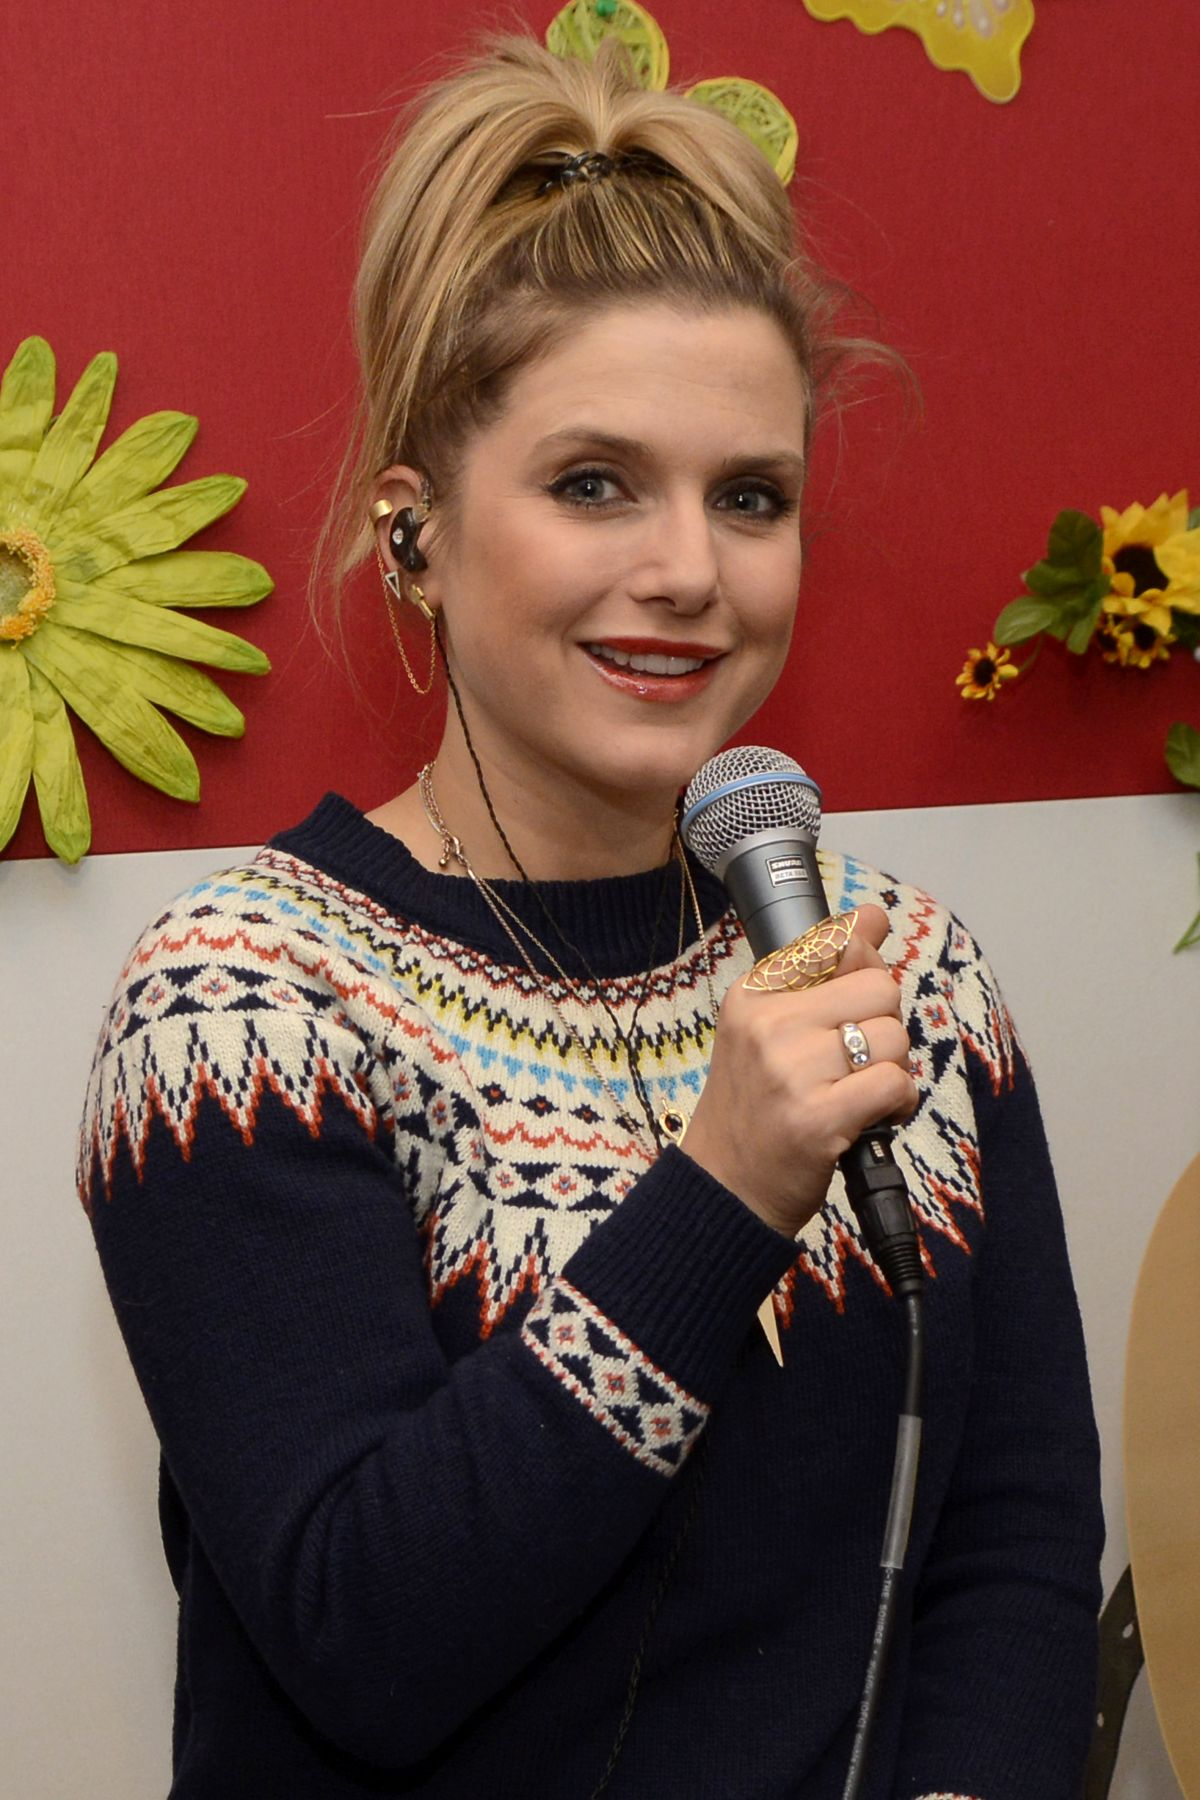 JEANETTE BIEDERMANN at Promotiontermin Radio FFN in Hanover